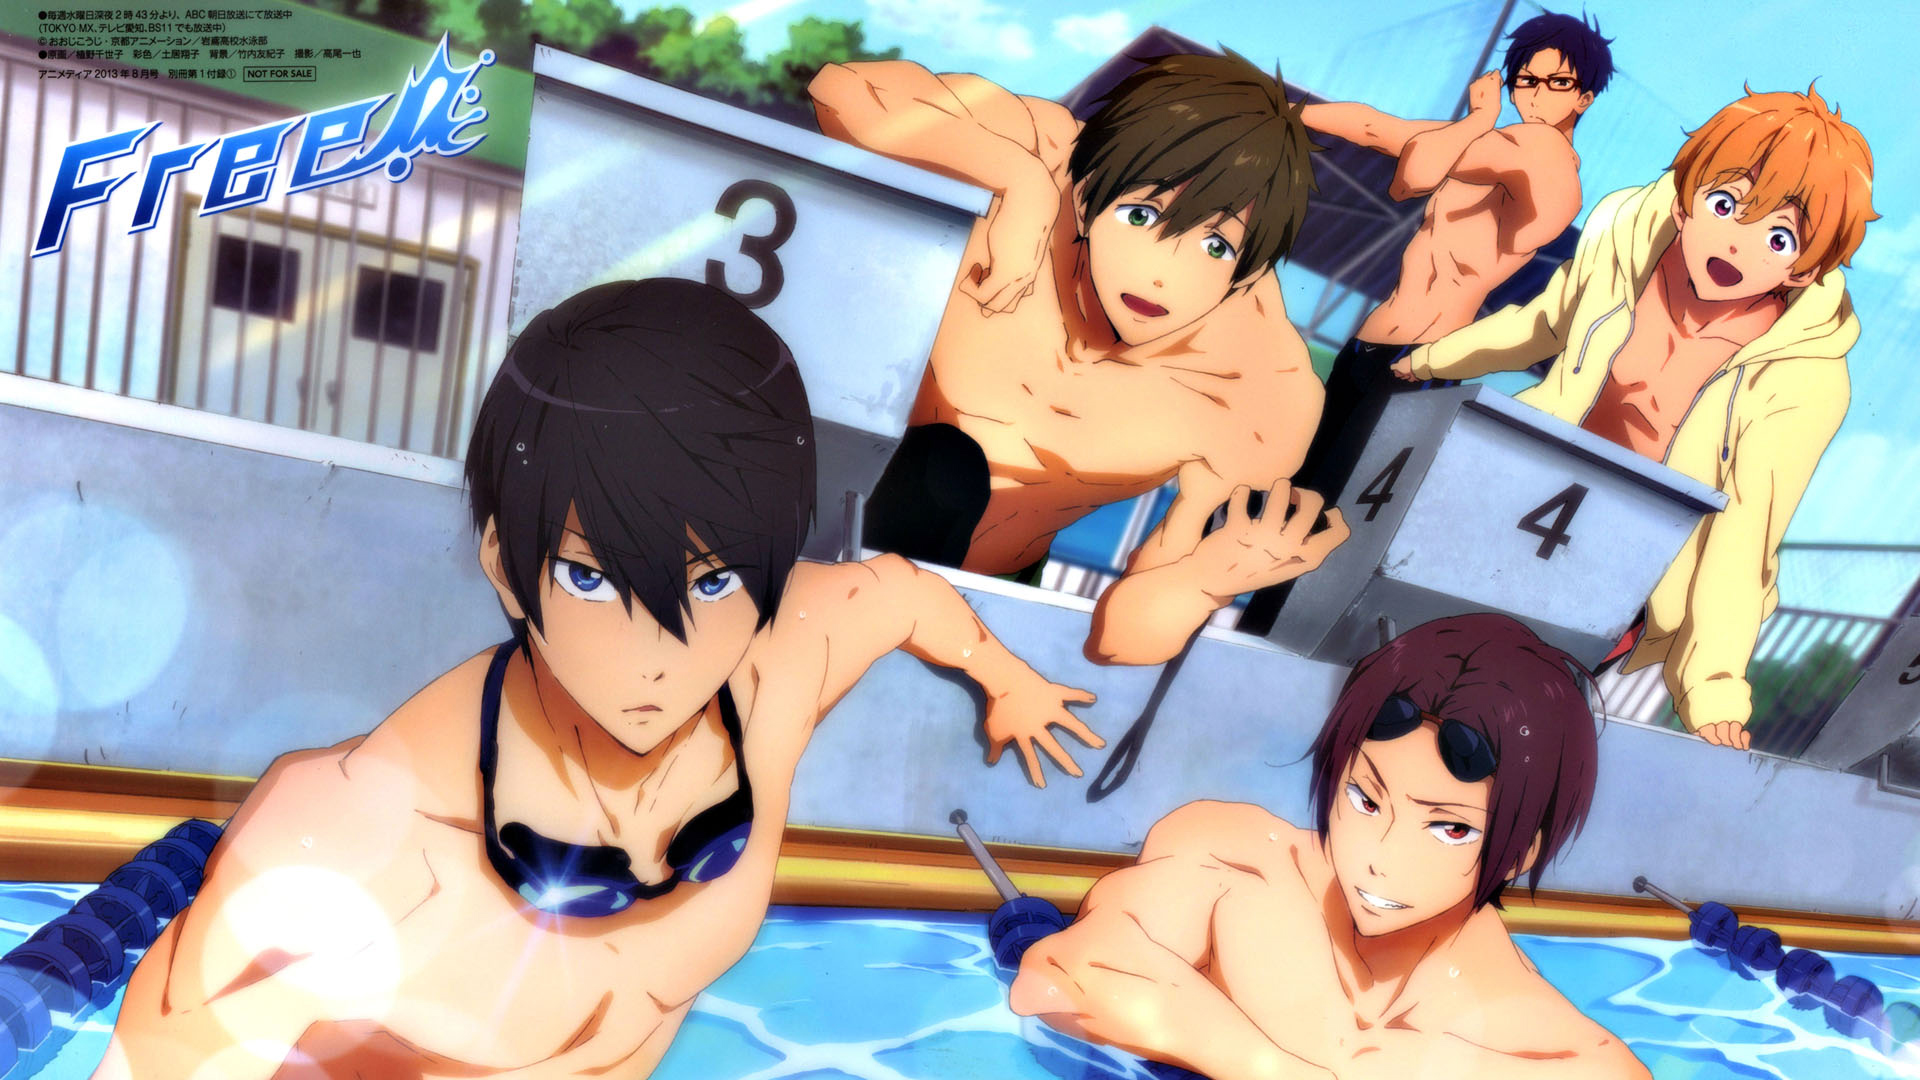 Free Iwatobi Swim Club Wallpaper Hd